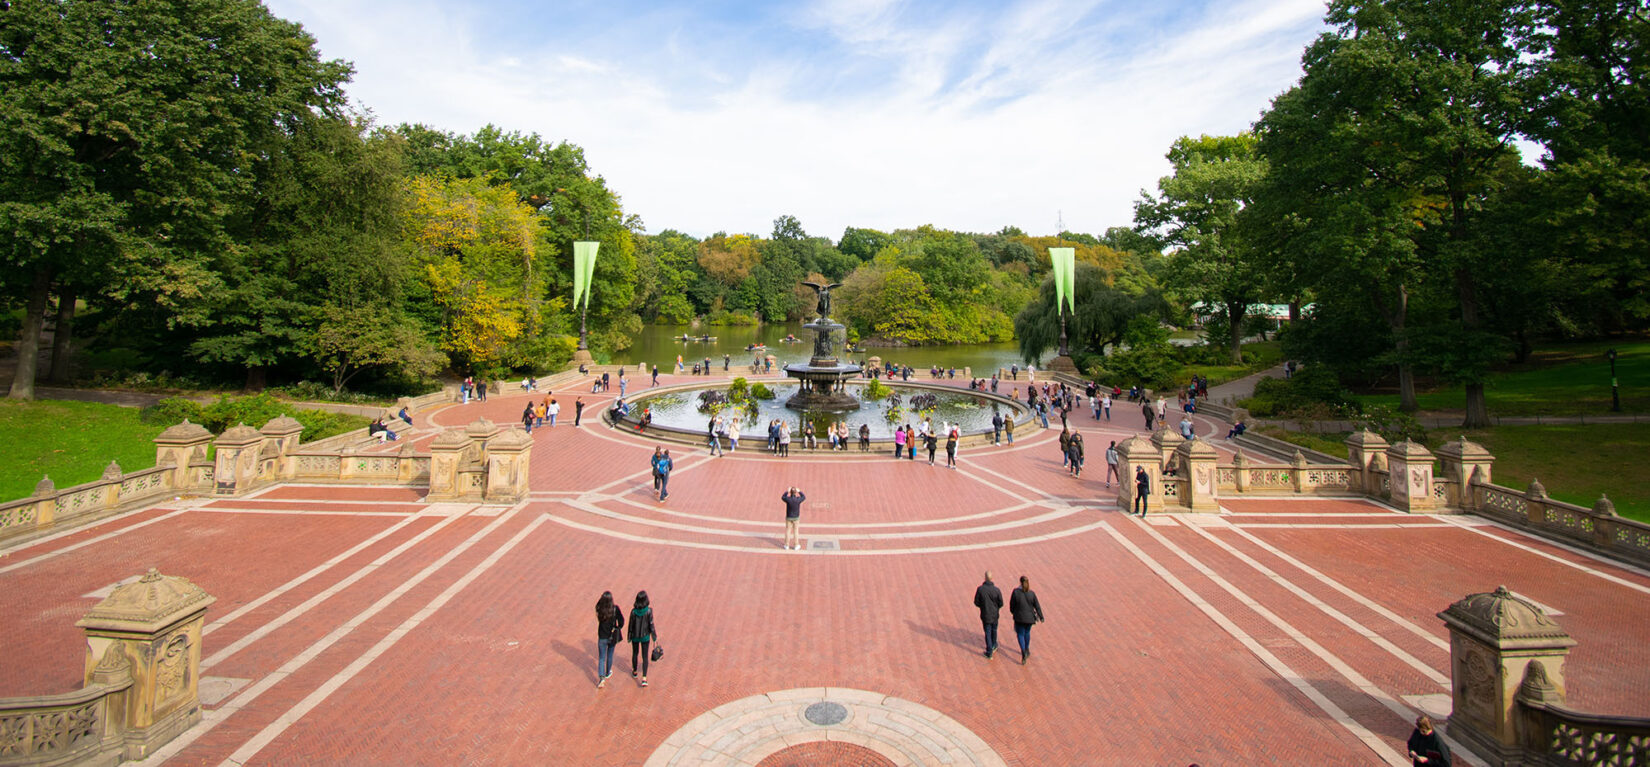 A wide-angle photograph of Bethesda Terrace taken from above